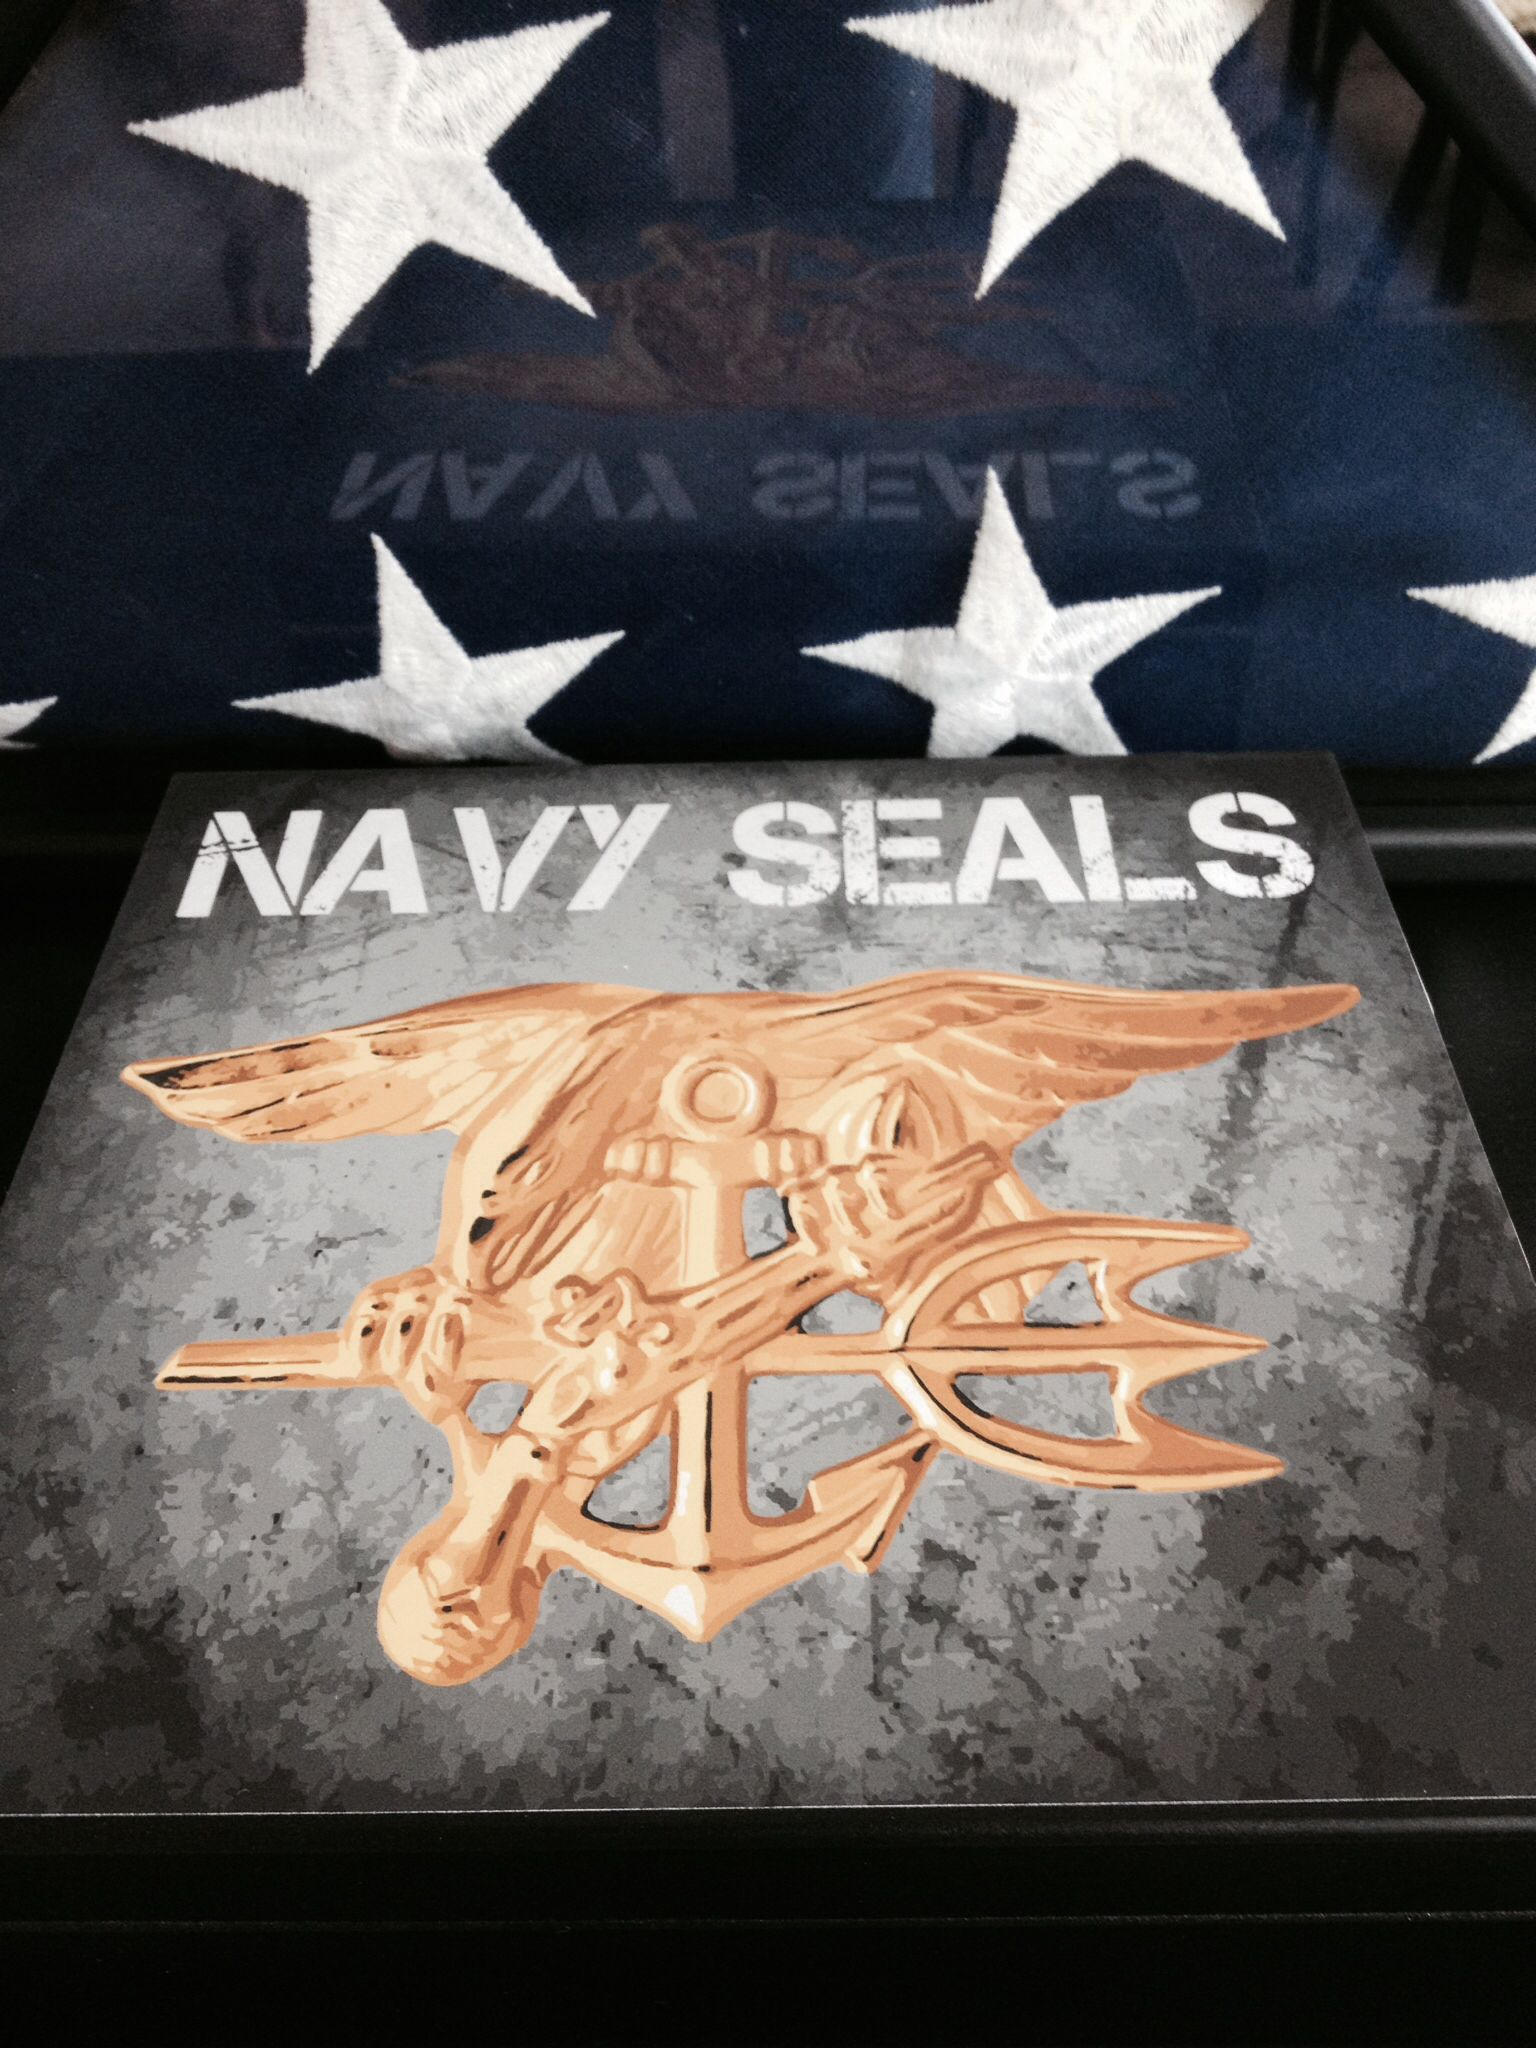 New humidor design with Navy Seal Trident Navy seals, Navy